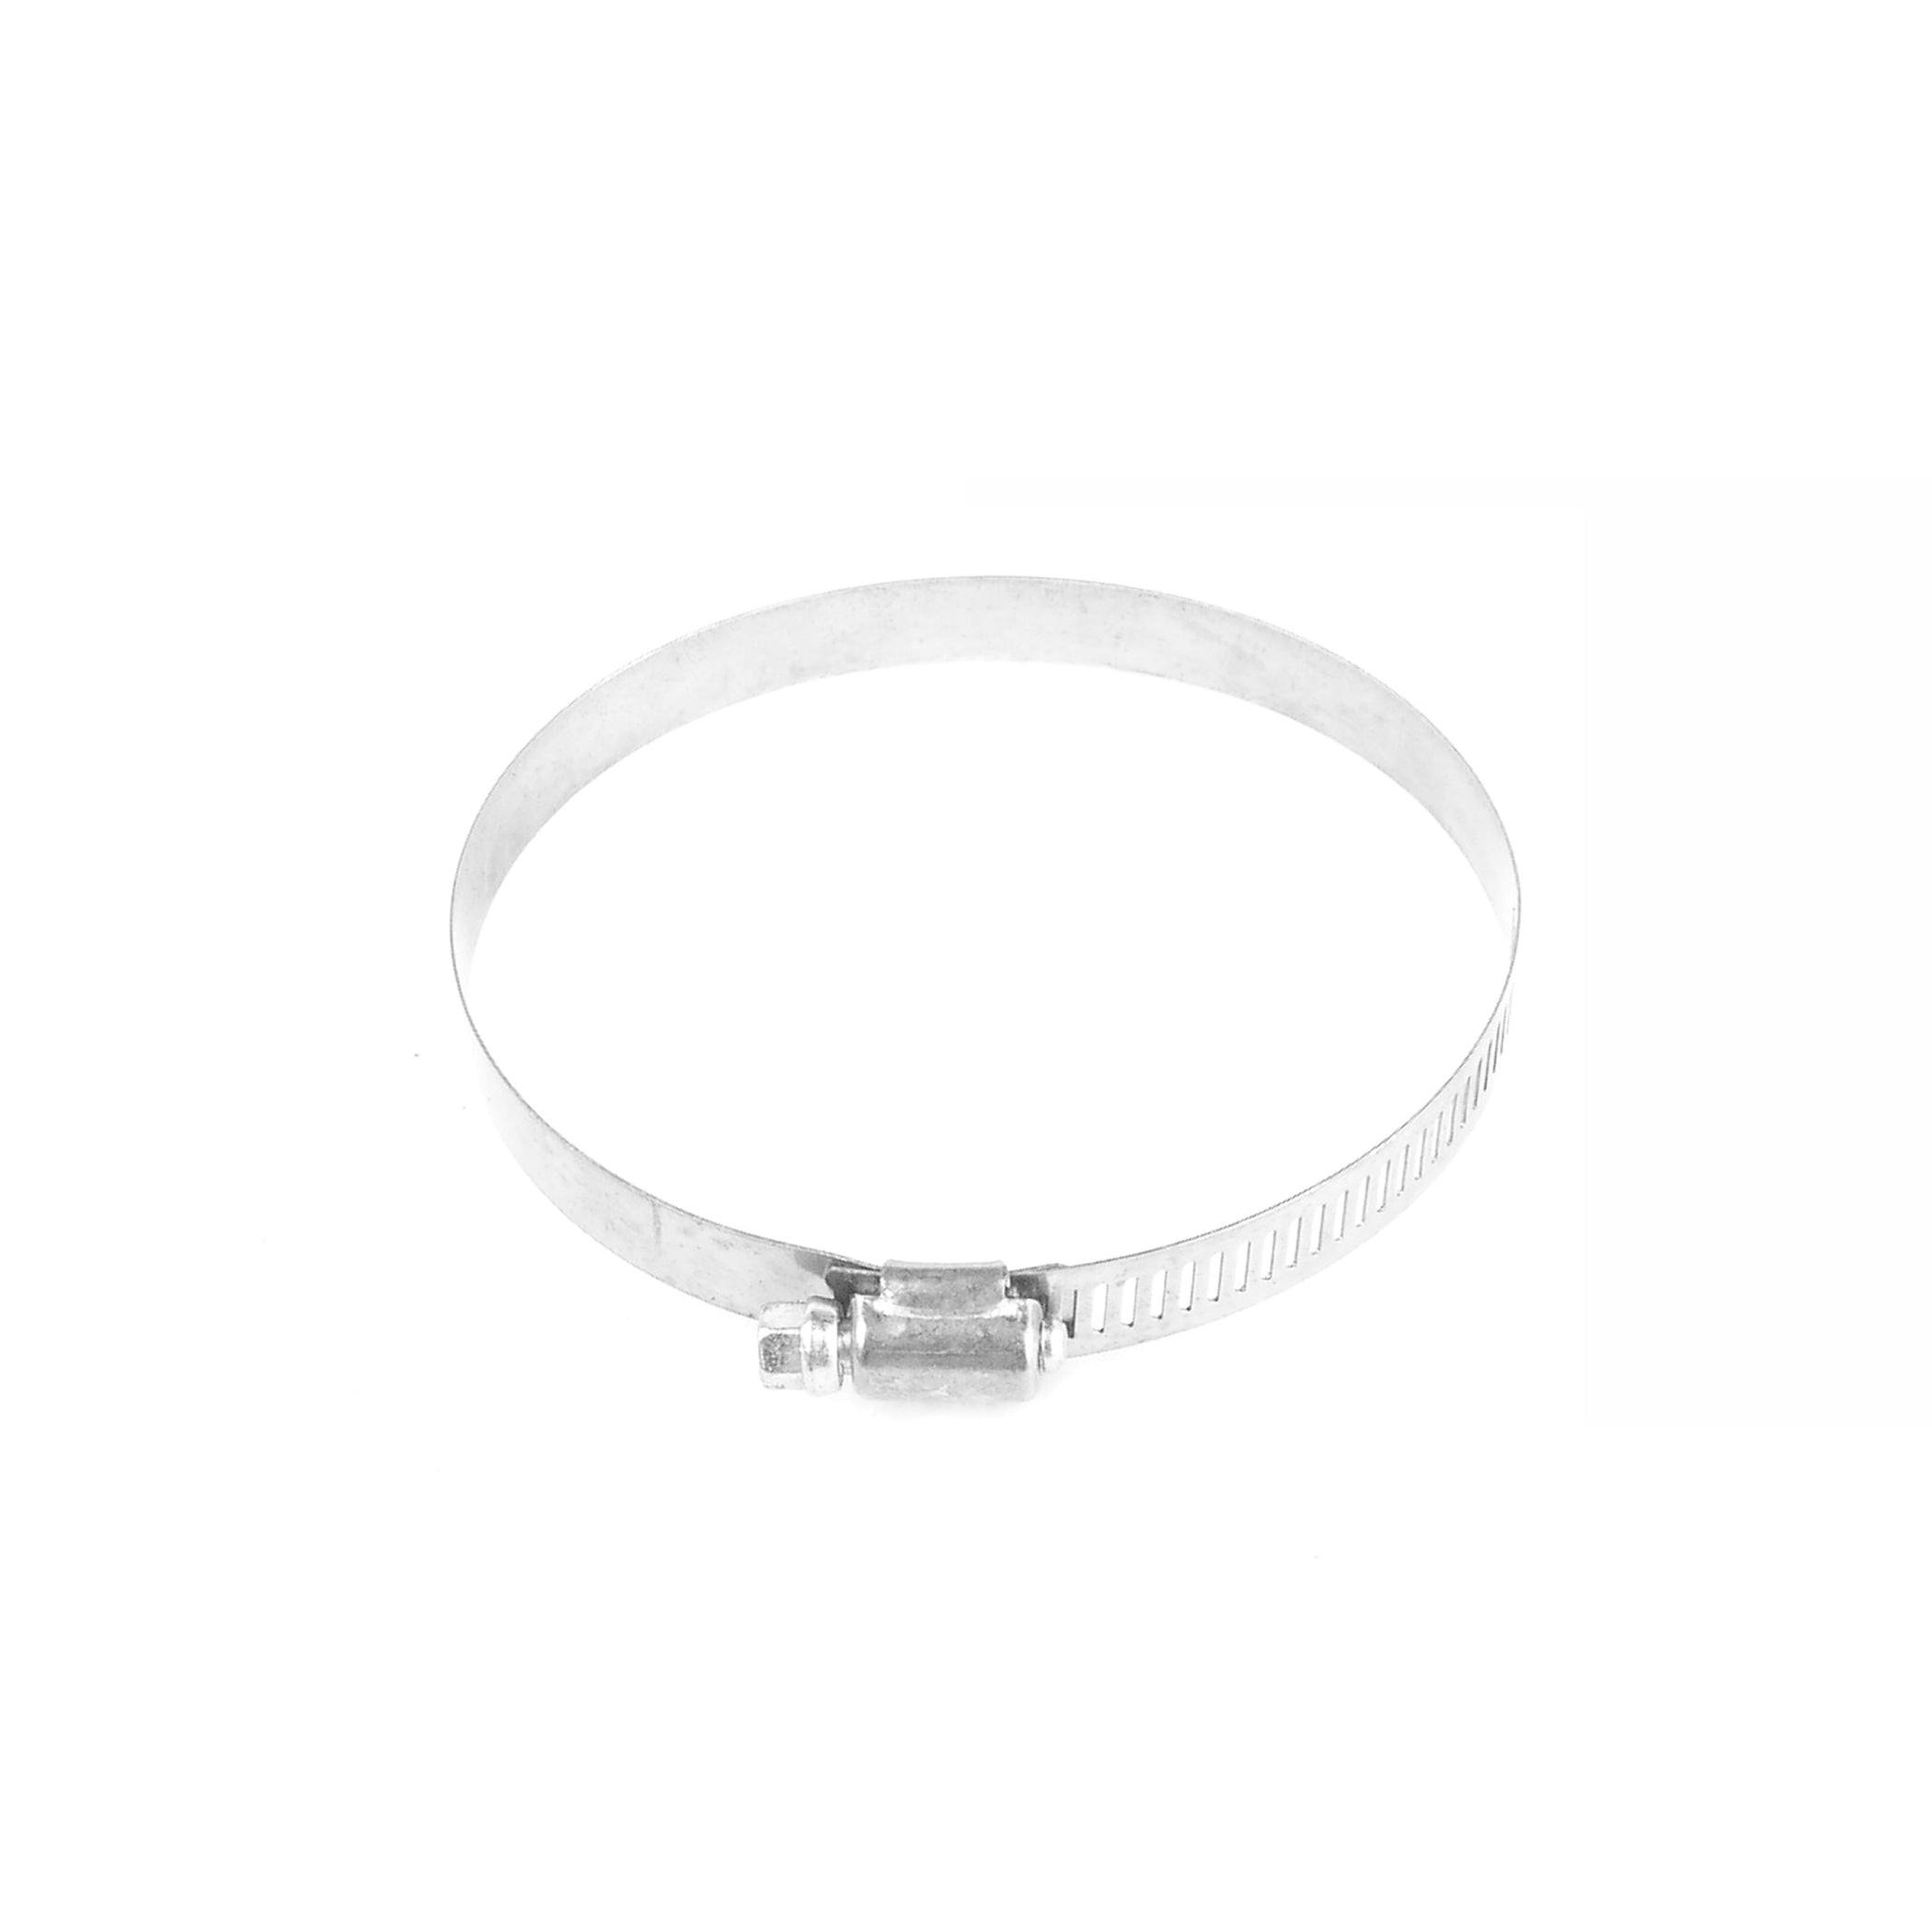 Big Horn 10542A 4-Inch Hose Clamp, Flat Style, Box of 50 by Big Horn